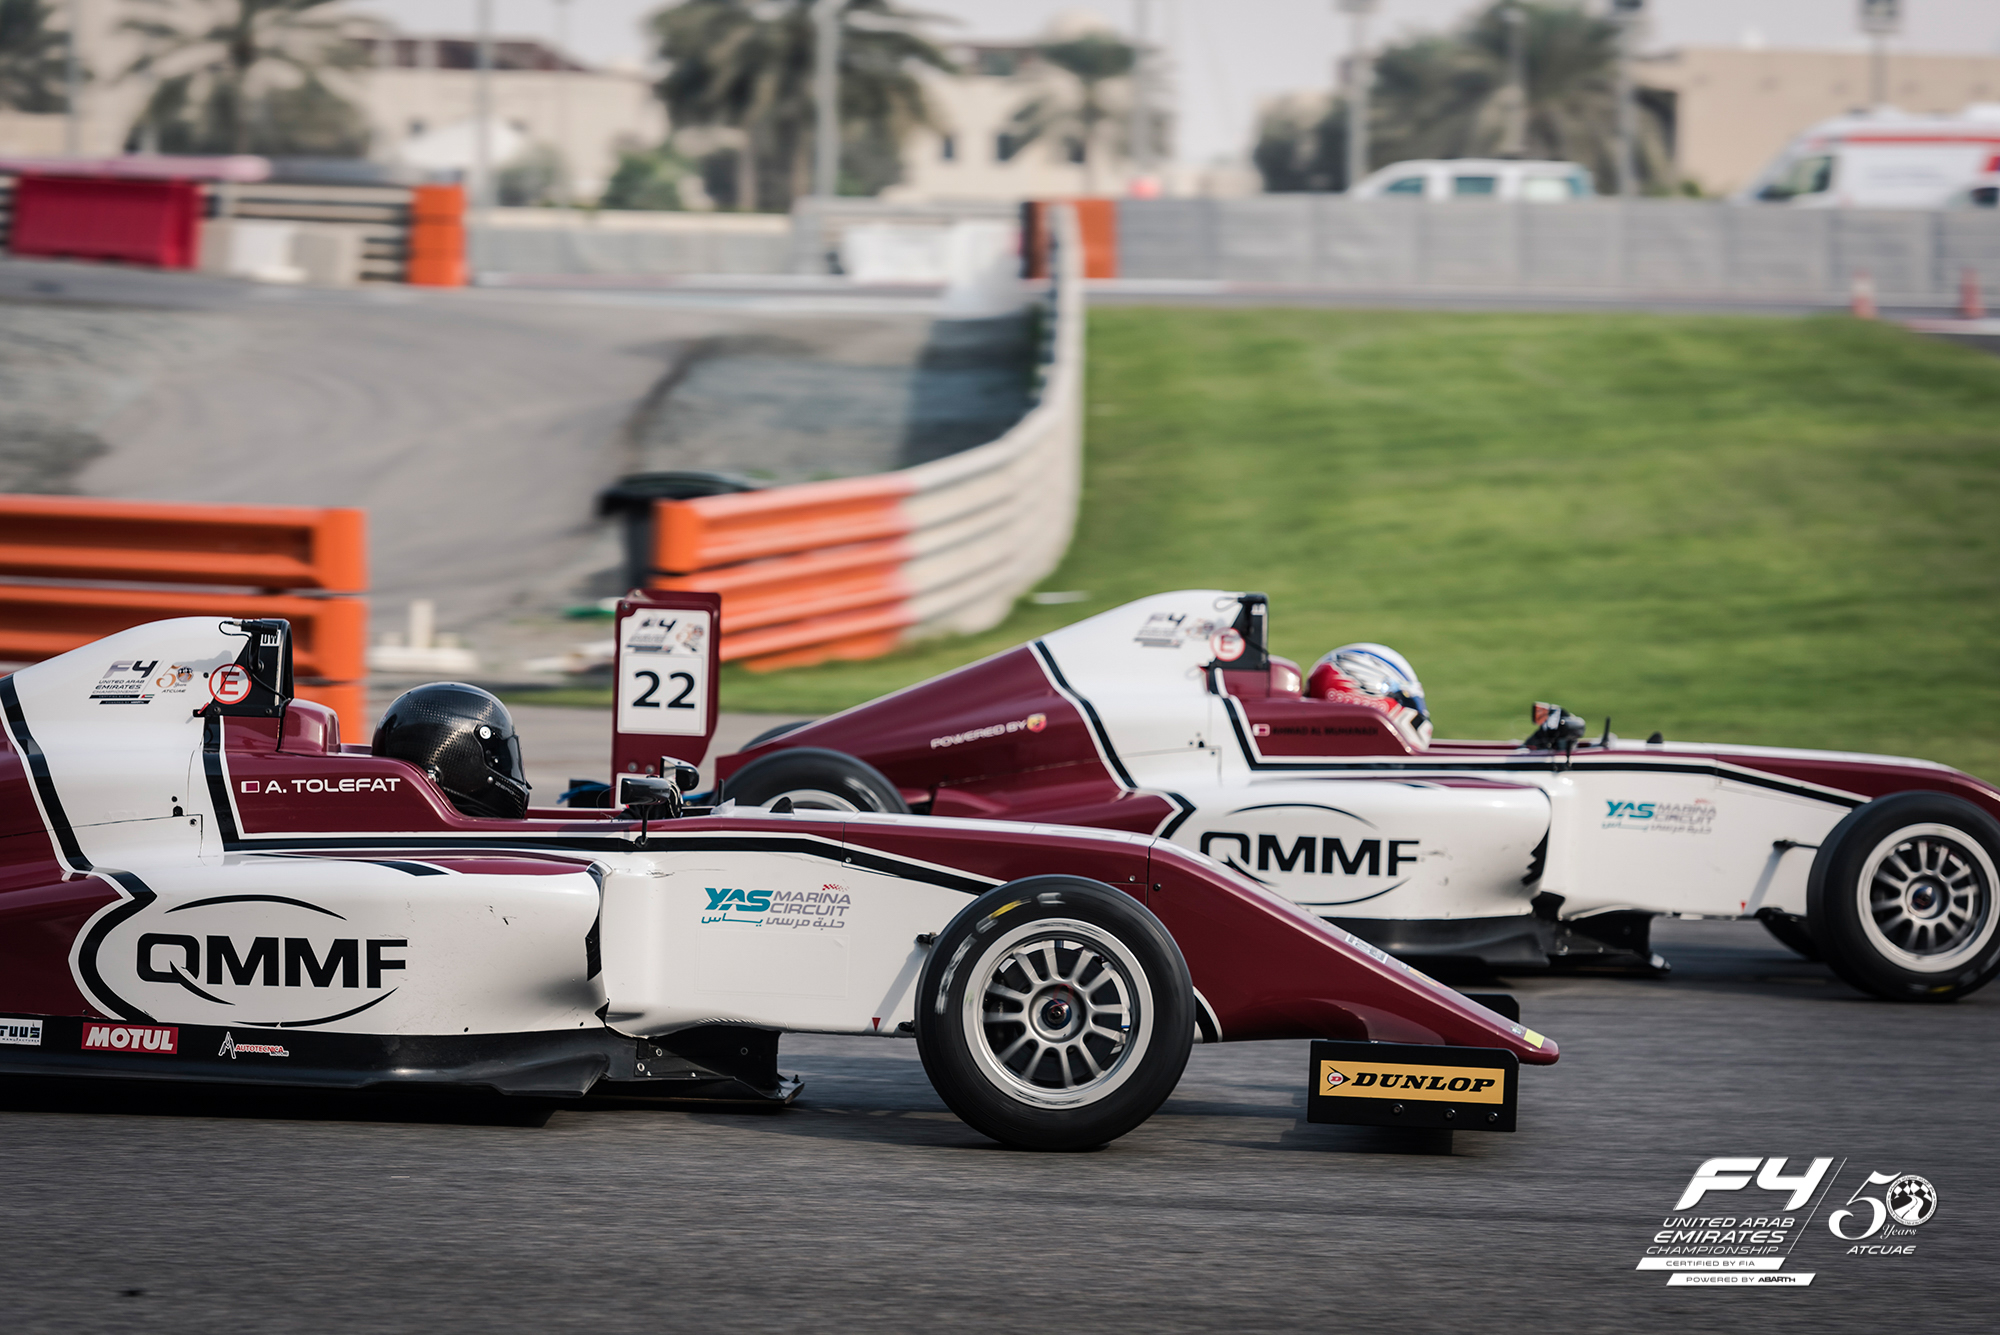 2016 16 12   F4 Second Round   Abu Dhabi 10 1